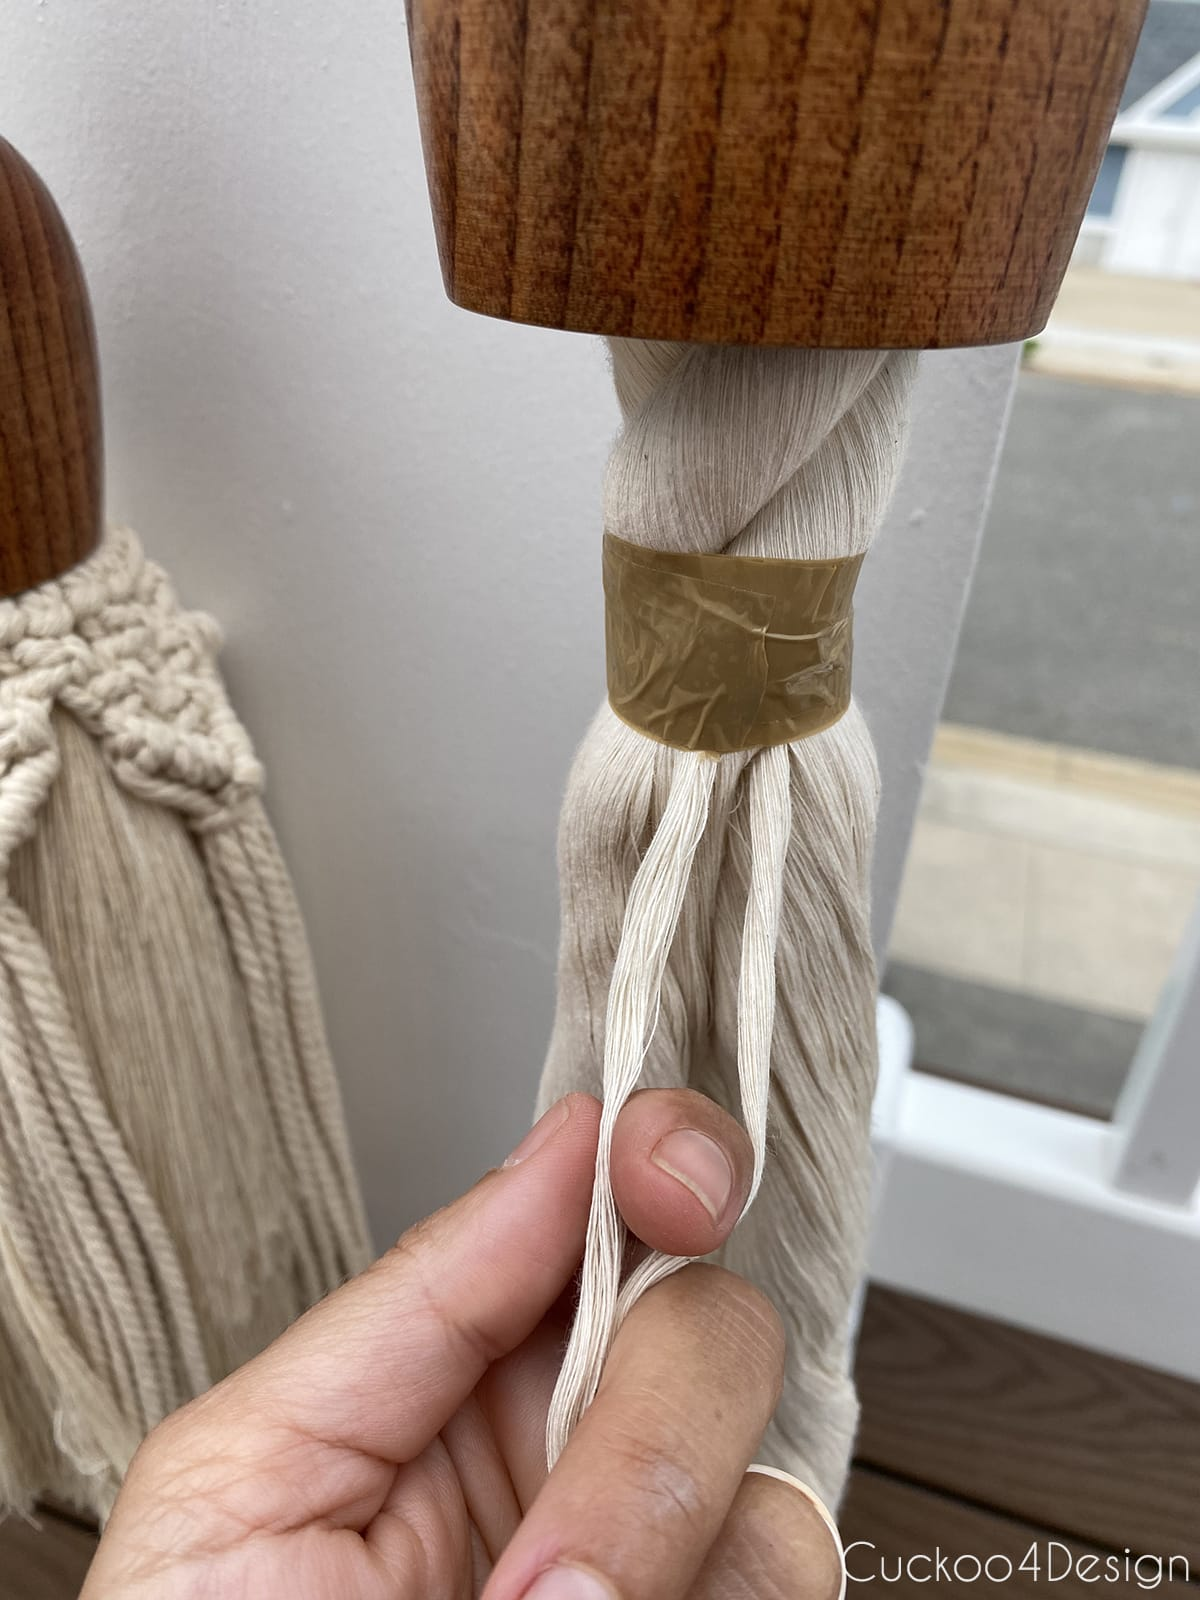 unraveling the ends of the cotton rope